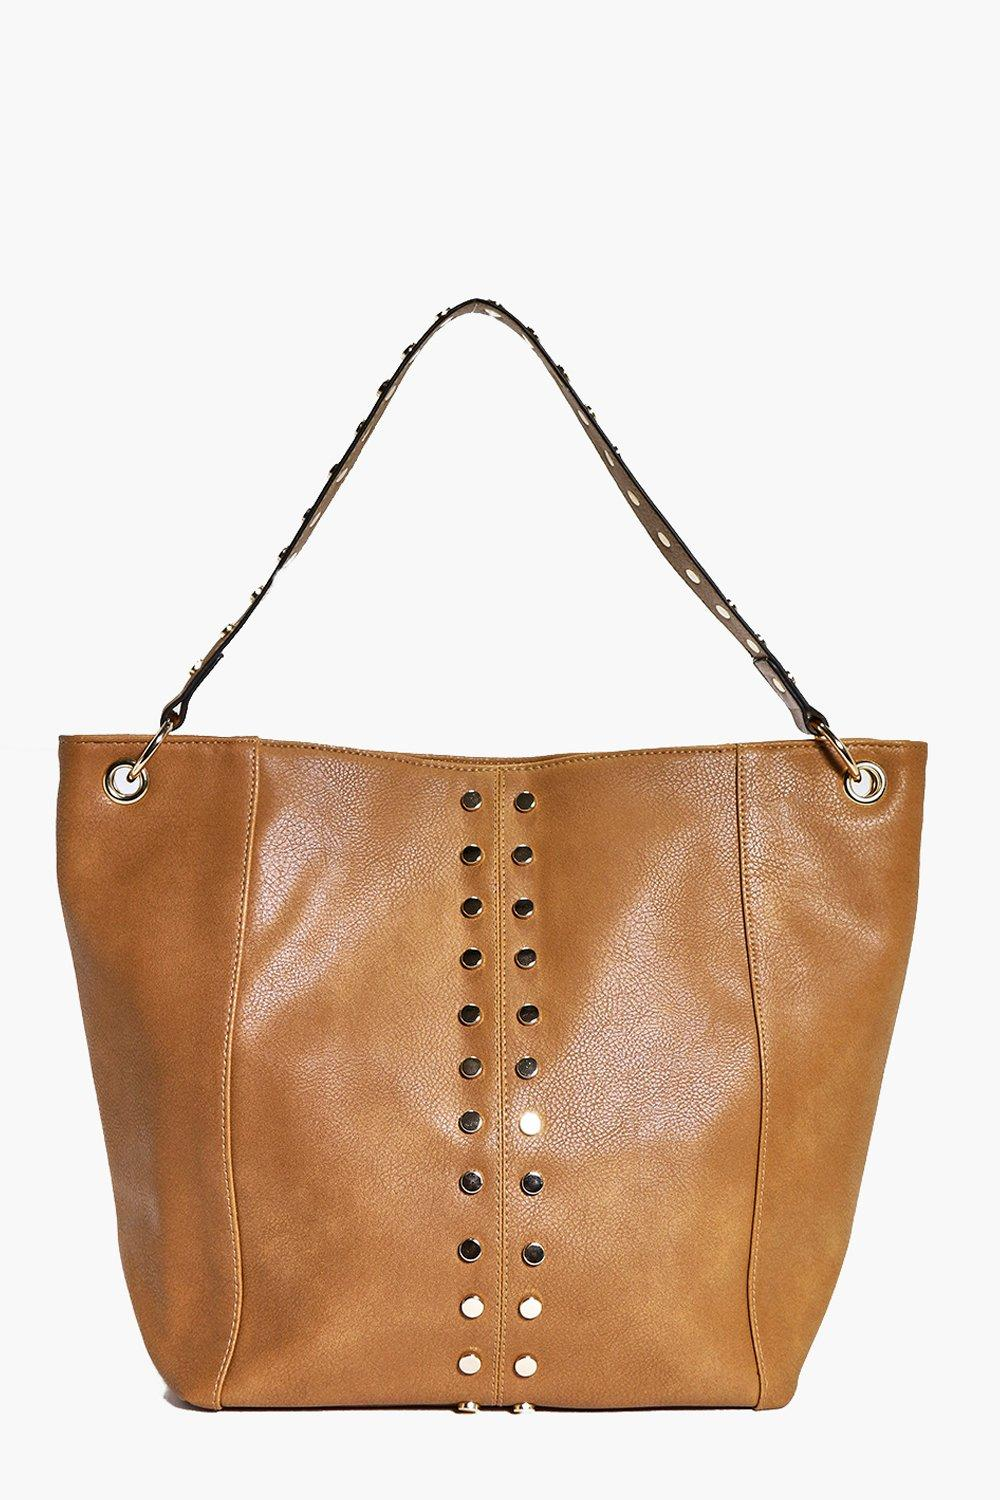 Stud Detail Shopper Bag - tan - A bag will make su